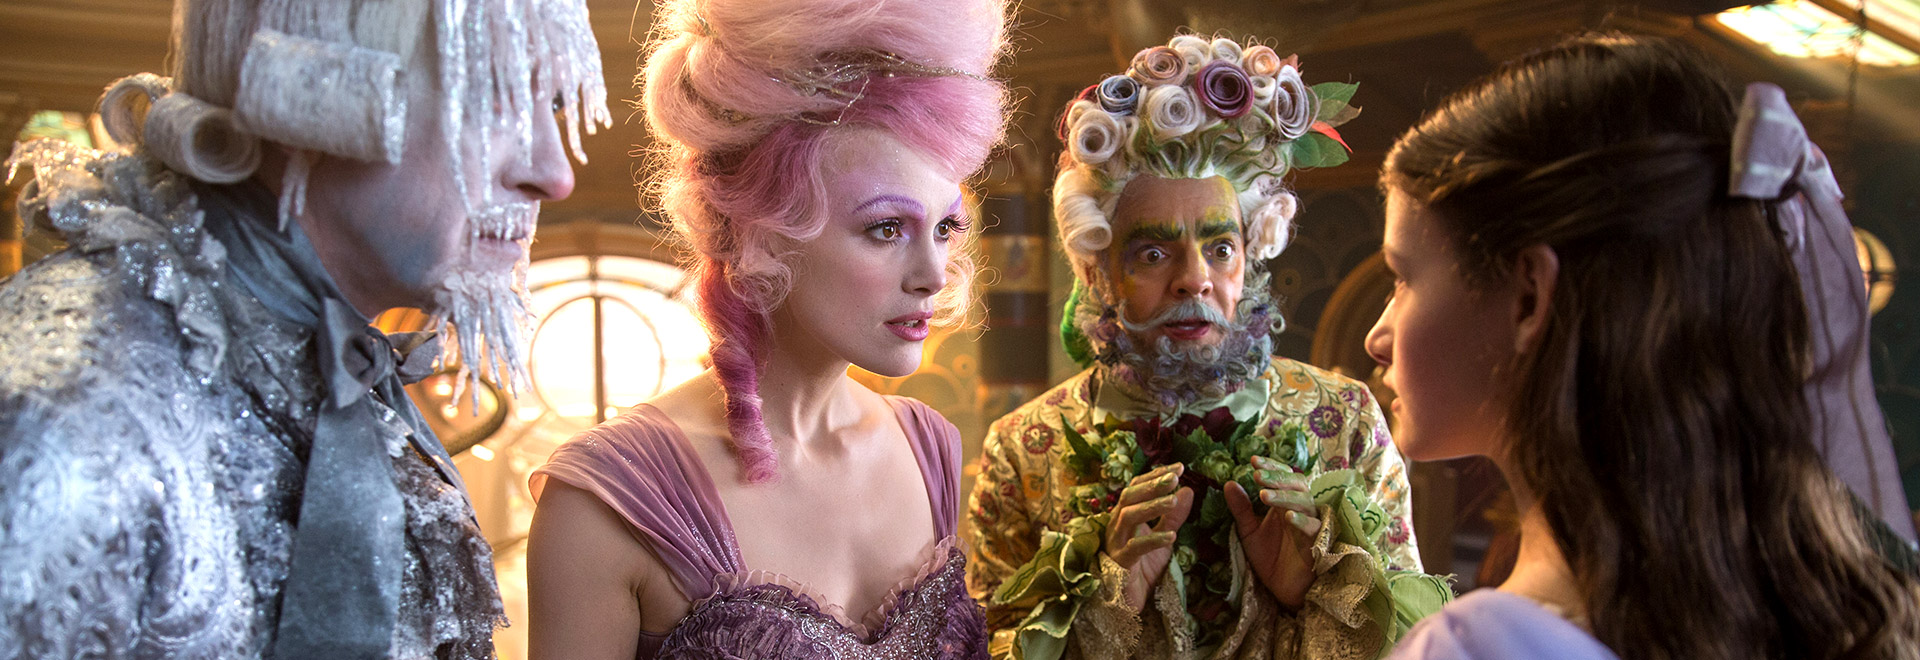 The Nutcracker and the Four Realms - Alice in LacklustreLand